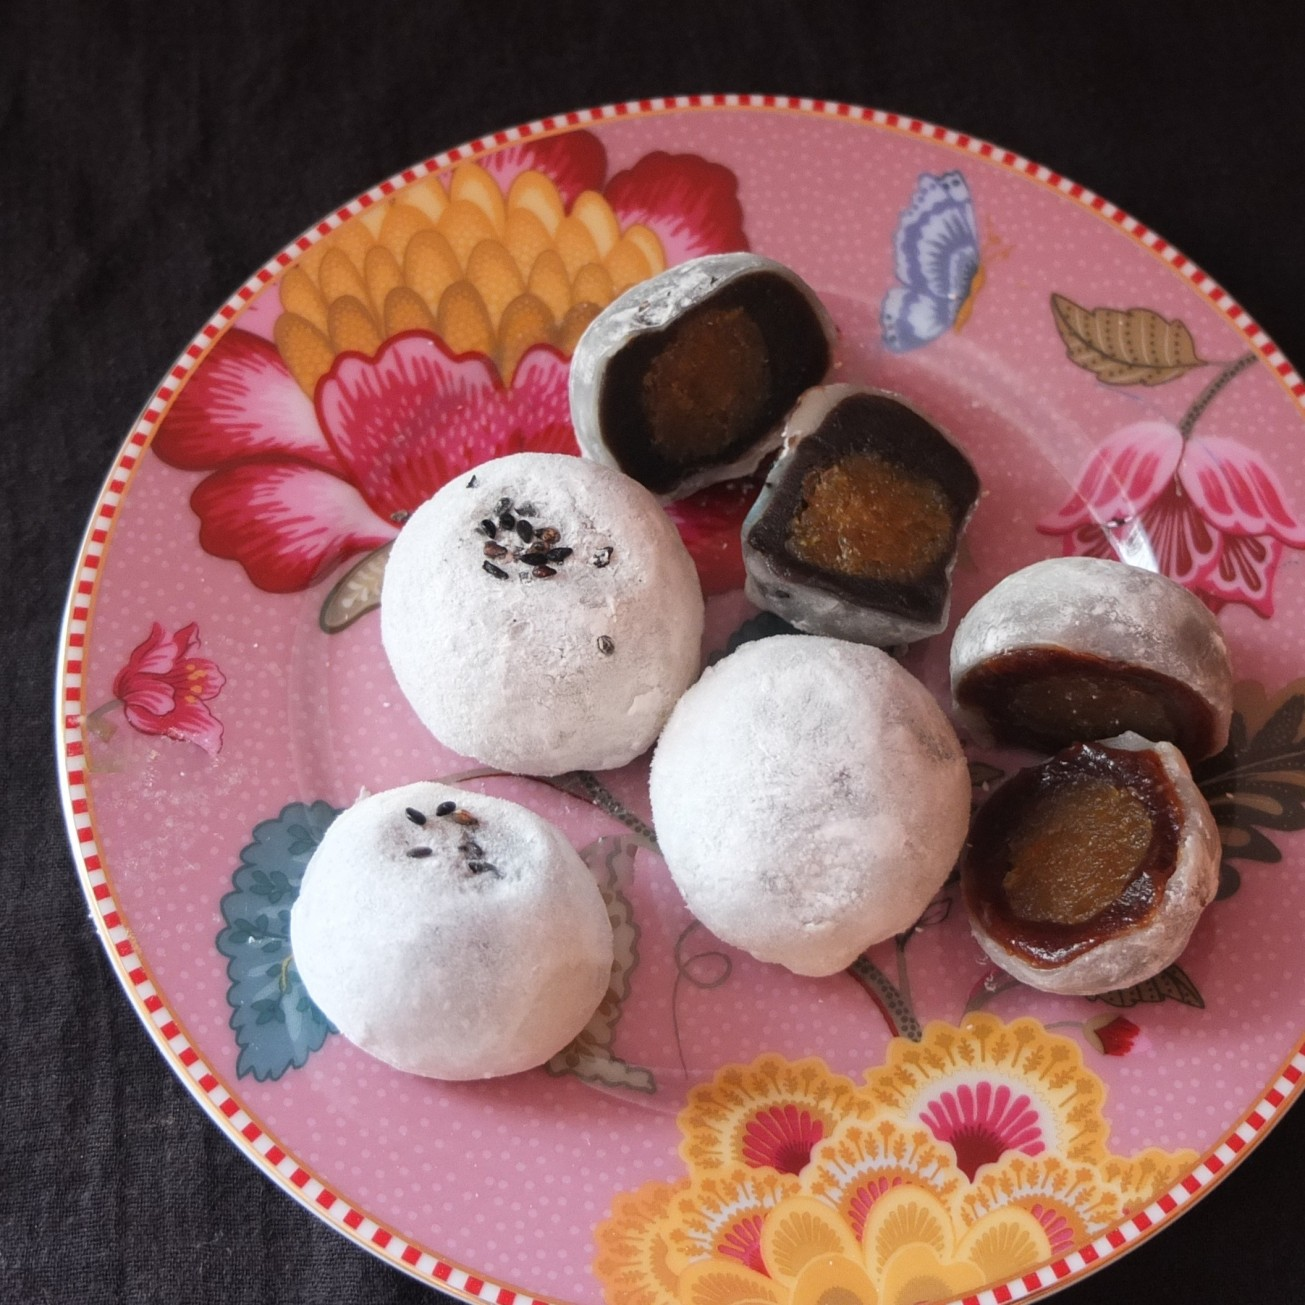 Red bean or black sesame and pineapple mochi rice cakes